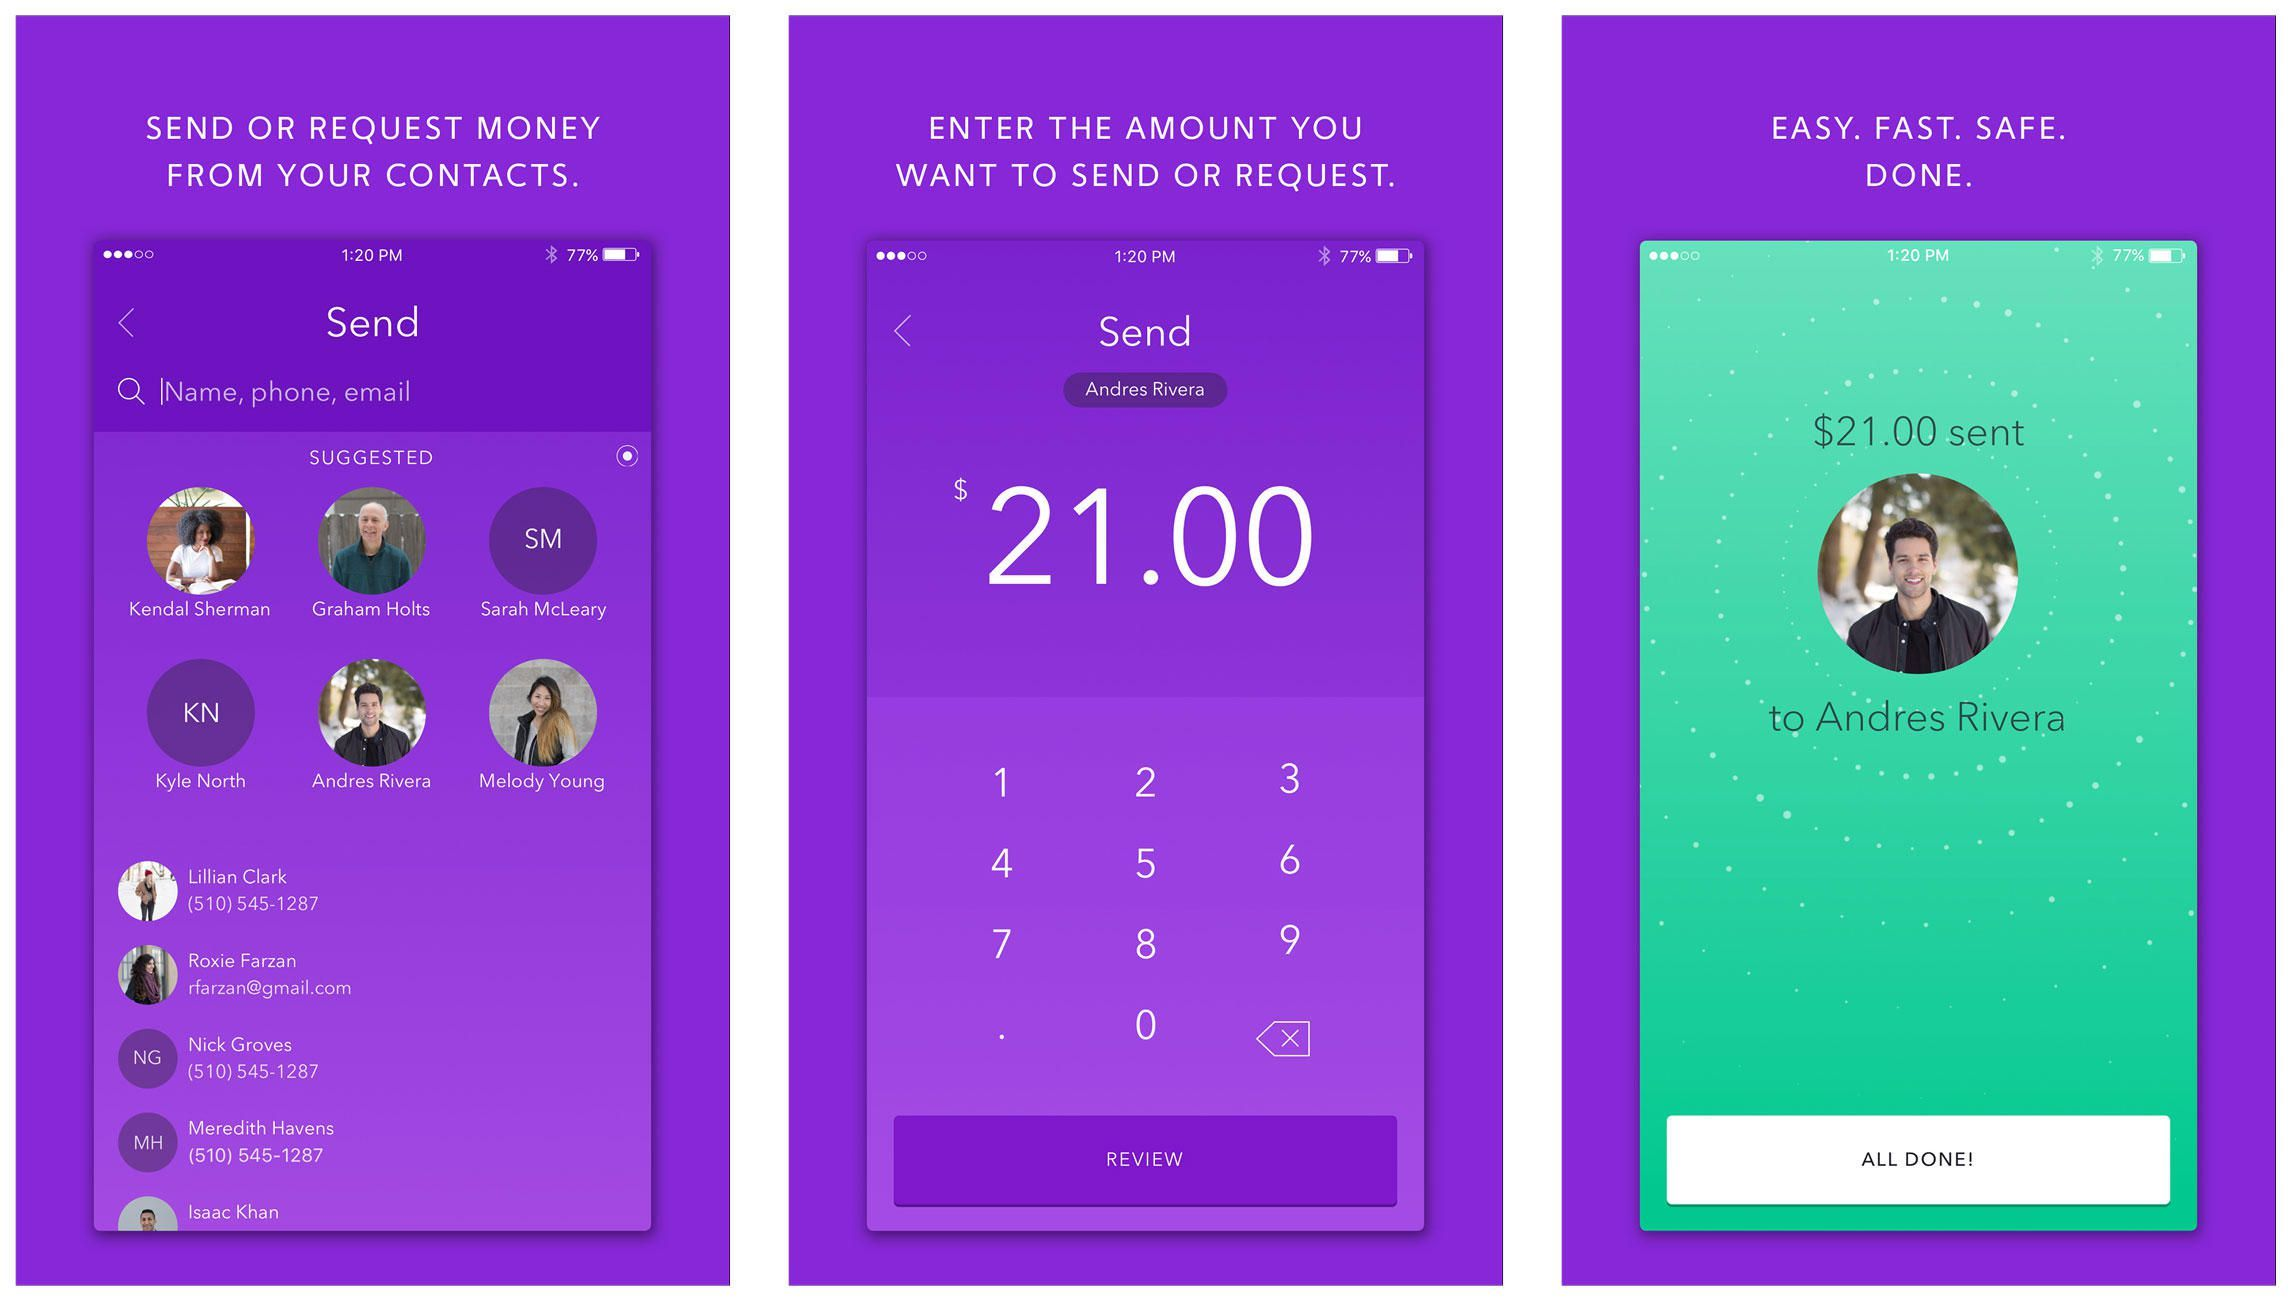 Gps jammer craigeiburn | With Zelle app, transfers from your bank could get easier